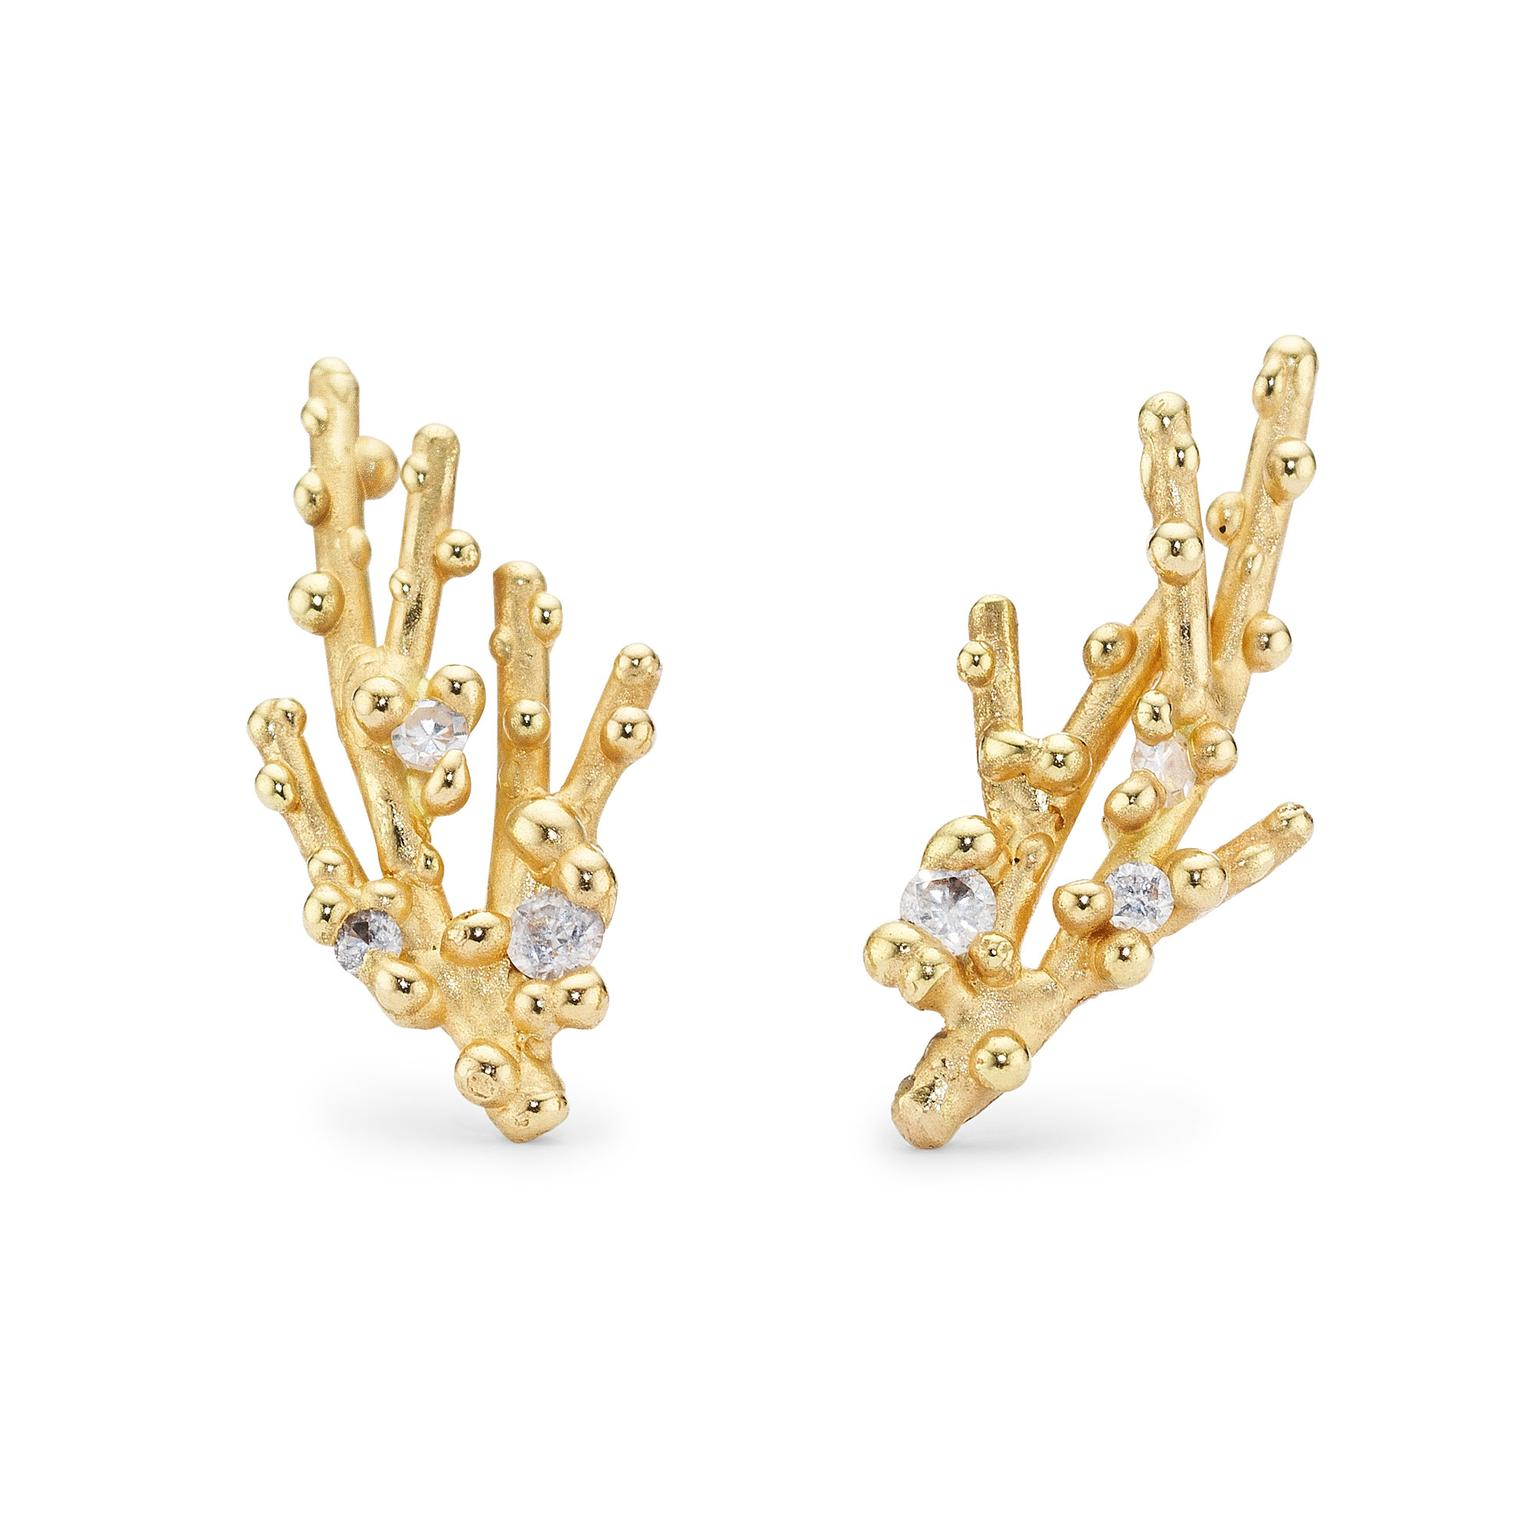 Ruth Tomlinson diamond earrings